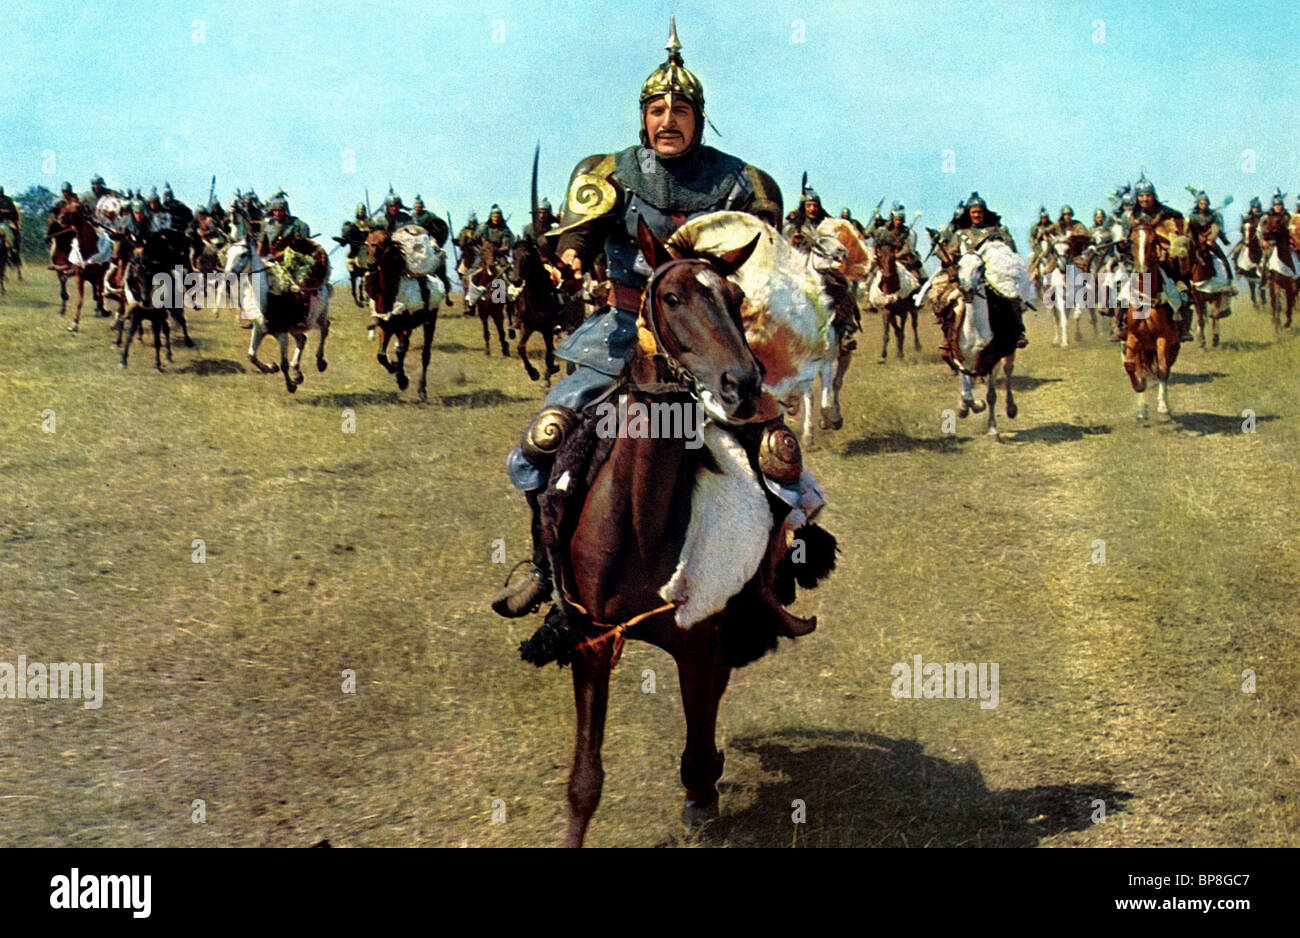 Genghis Khan Photos Genghis Khan Images Page 5 Alamy